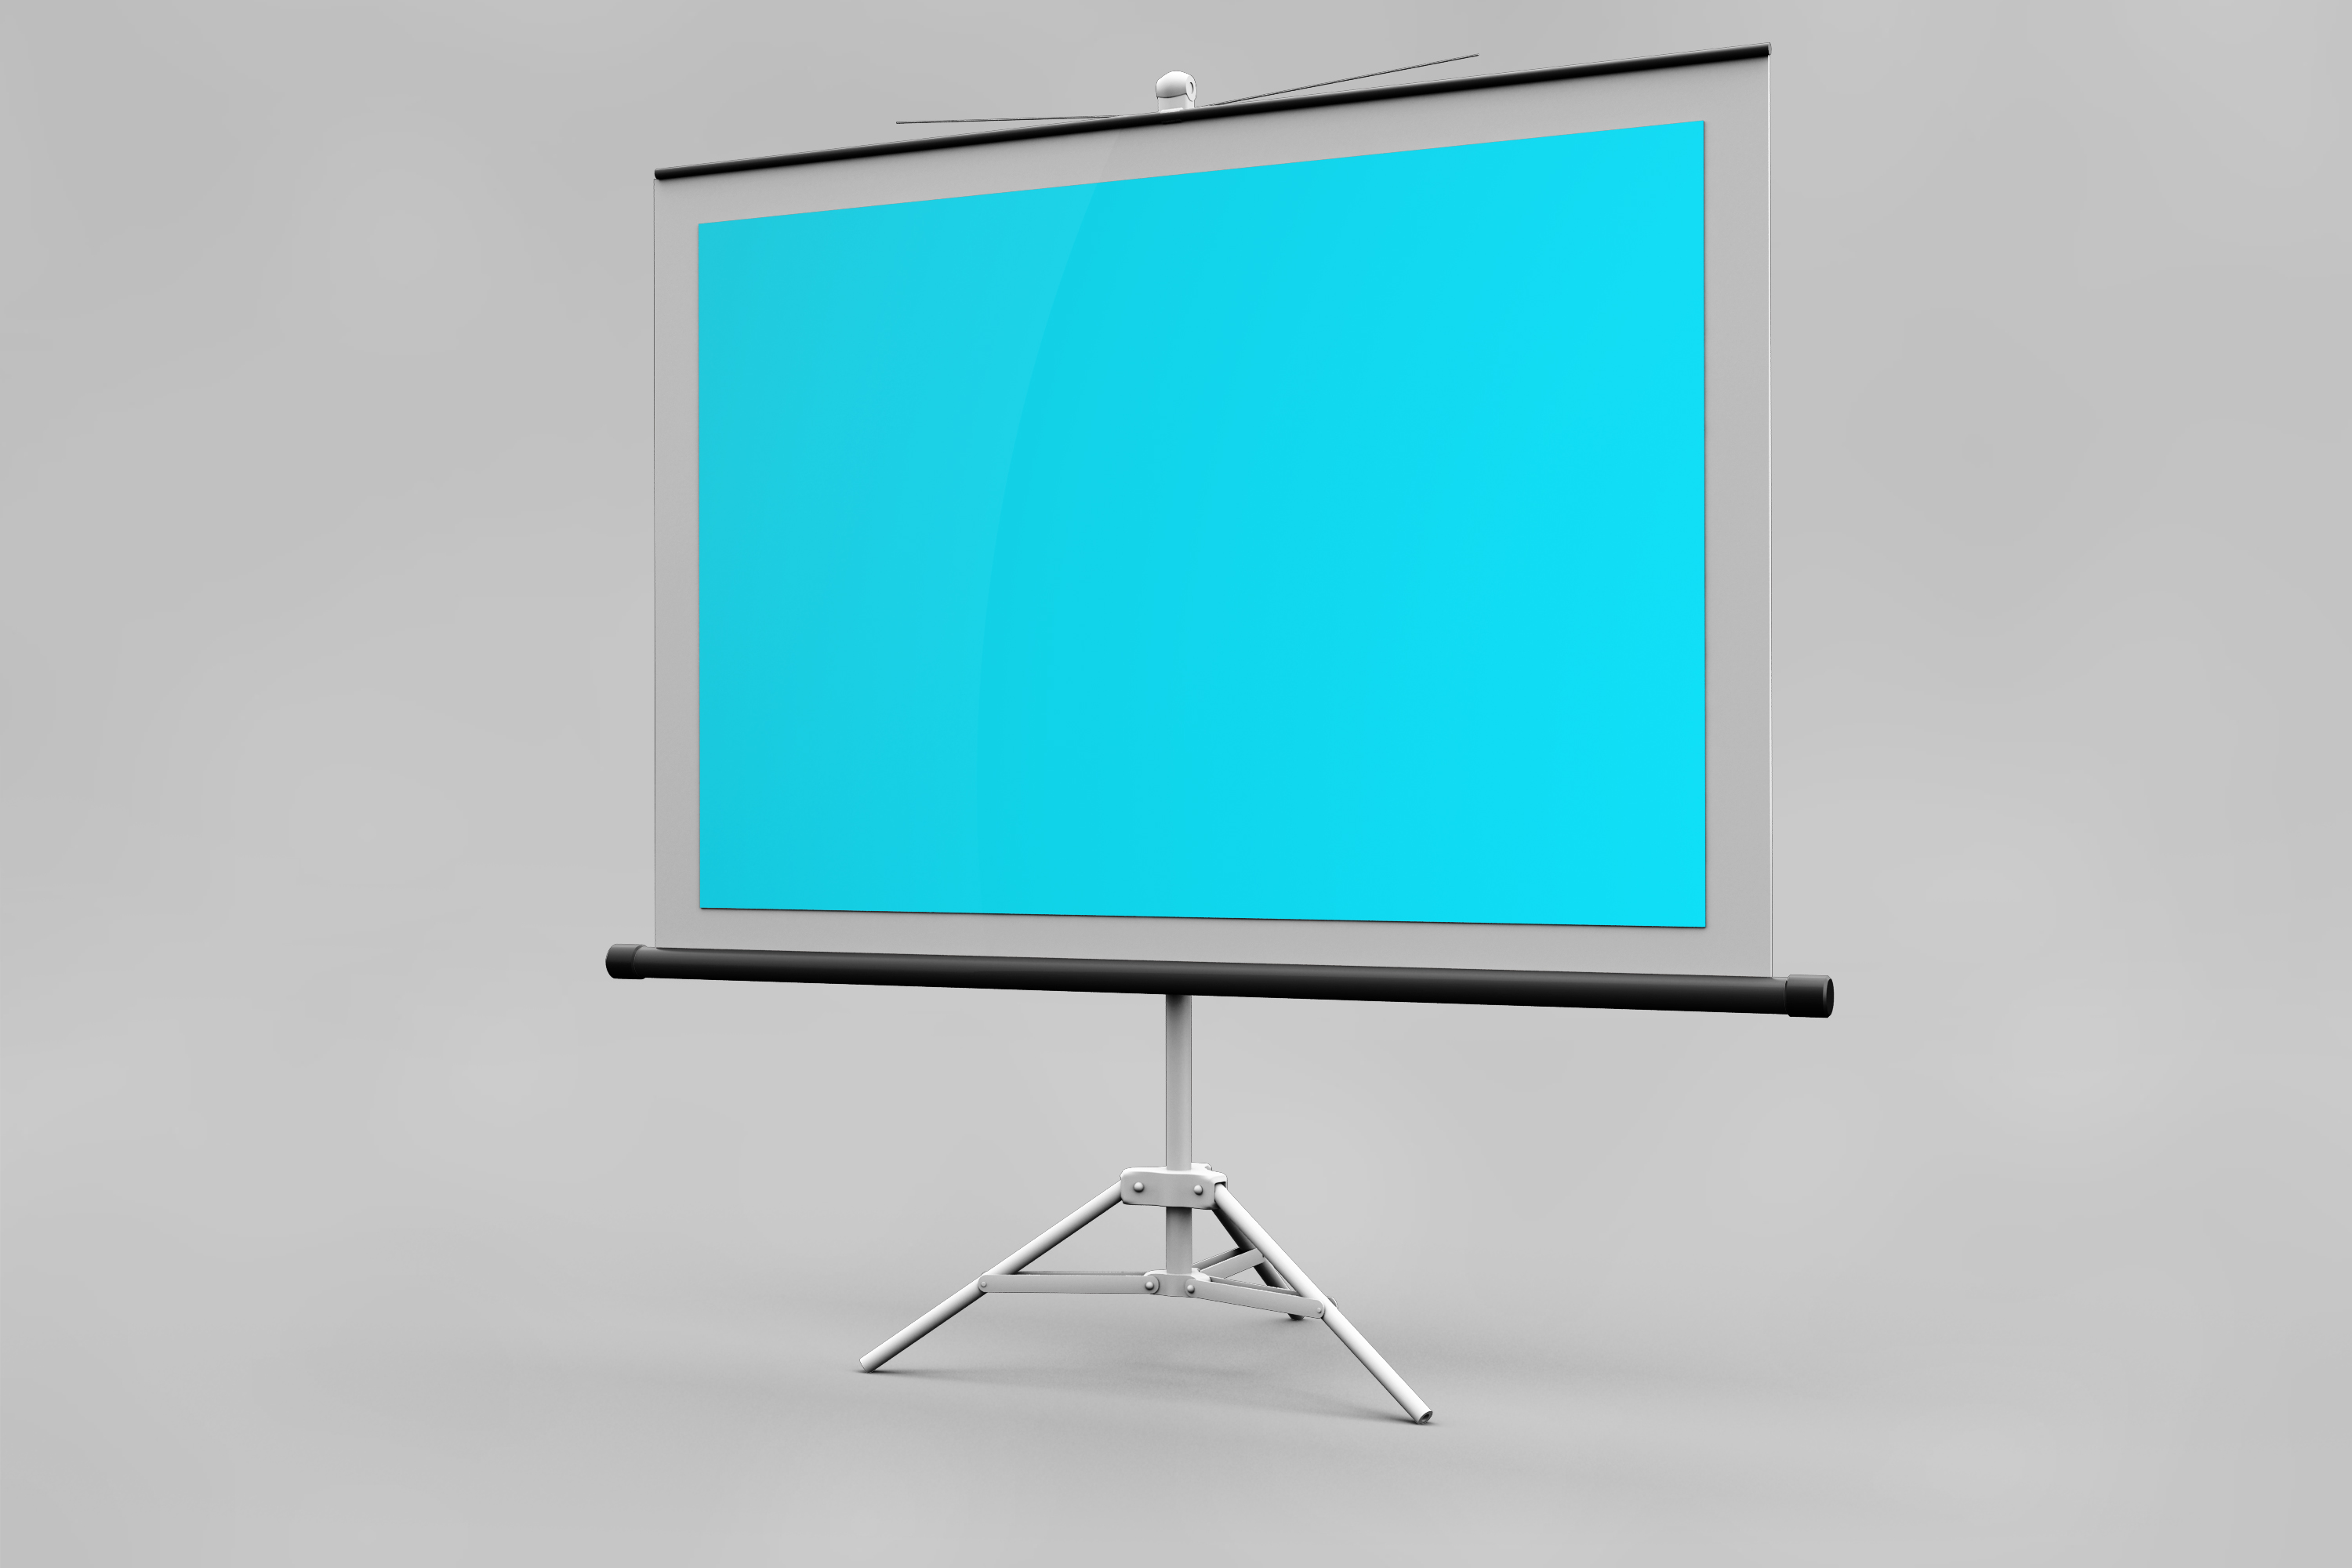 Projector Screen MockUp example image 4